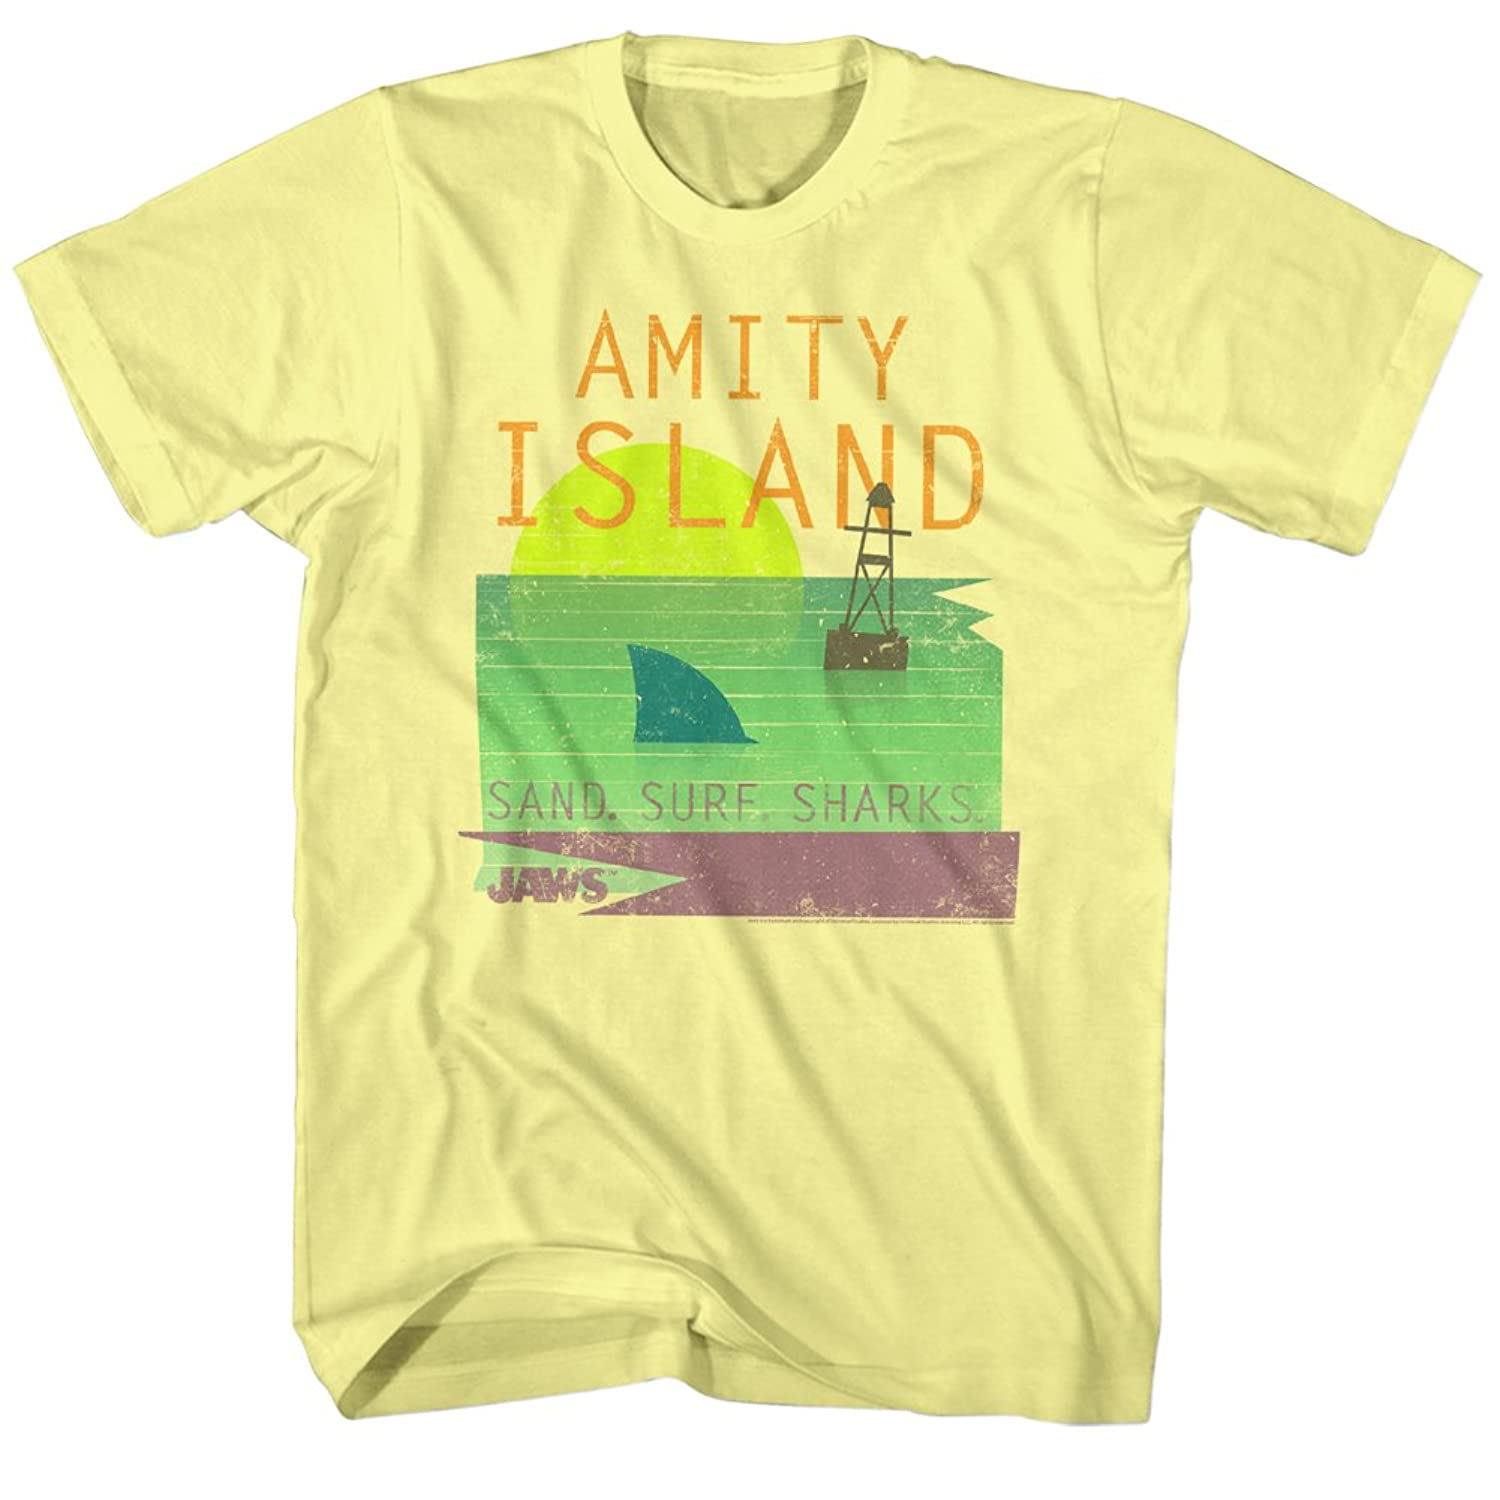 Jaws 1970's Shark Thriller Spielberg Movie Amity Island Clip Art Adult T-Shirt